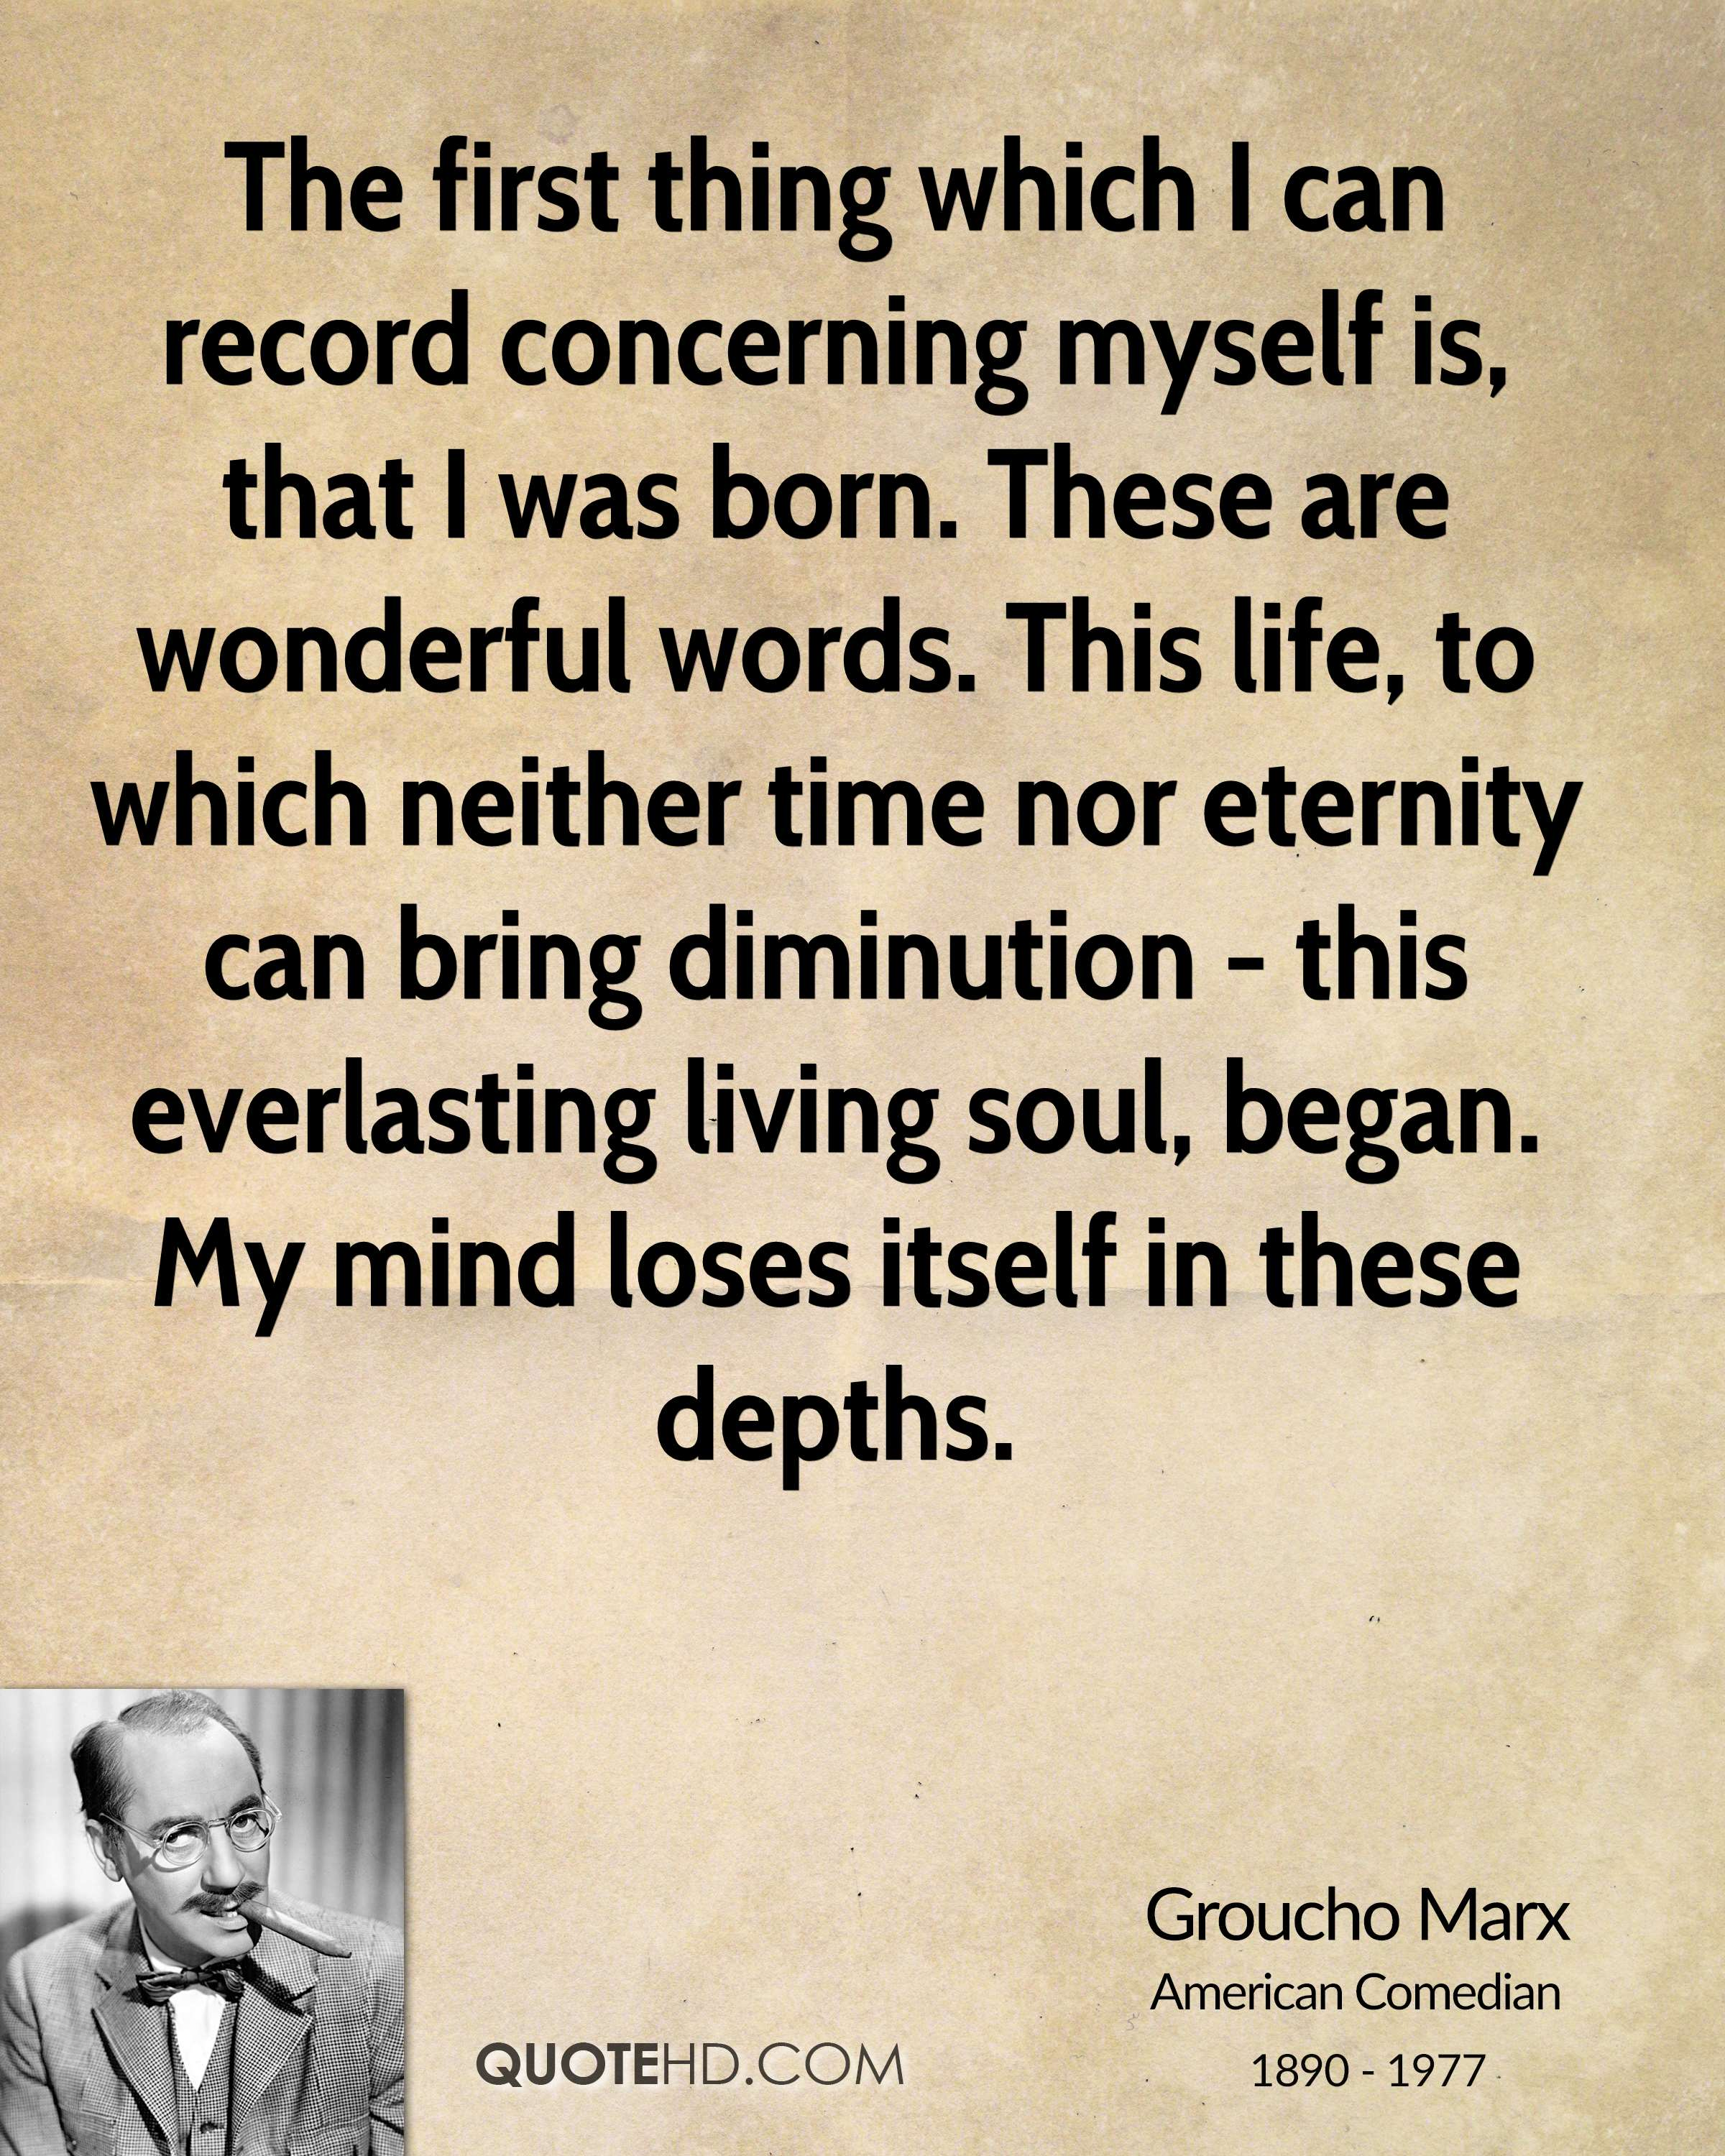 The first thing which I can record concerning myself is, that I was born. These are wonderful words. This life, to which neither time nor eternity can bring diminution - this everlasting living soul, began. My mind loses itself in these depths.